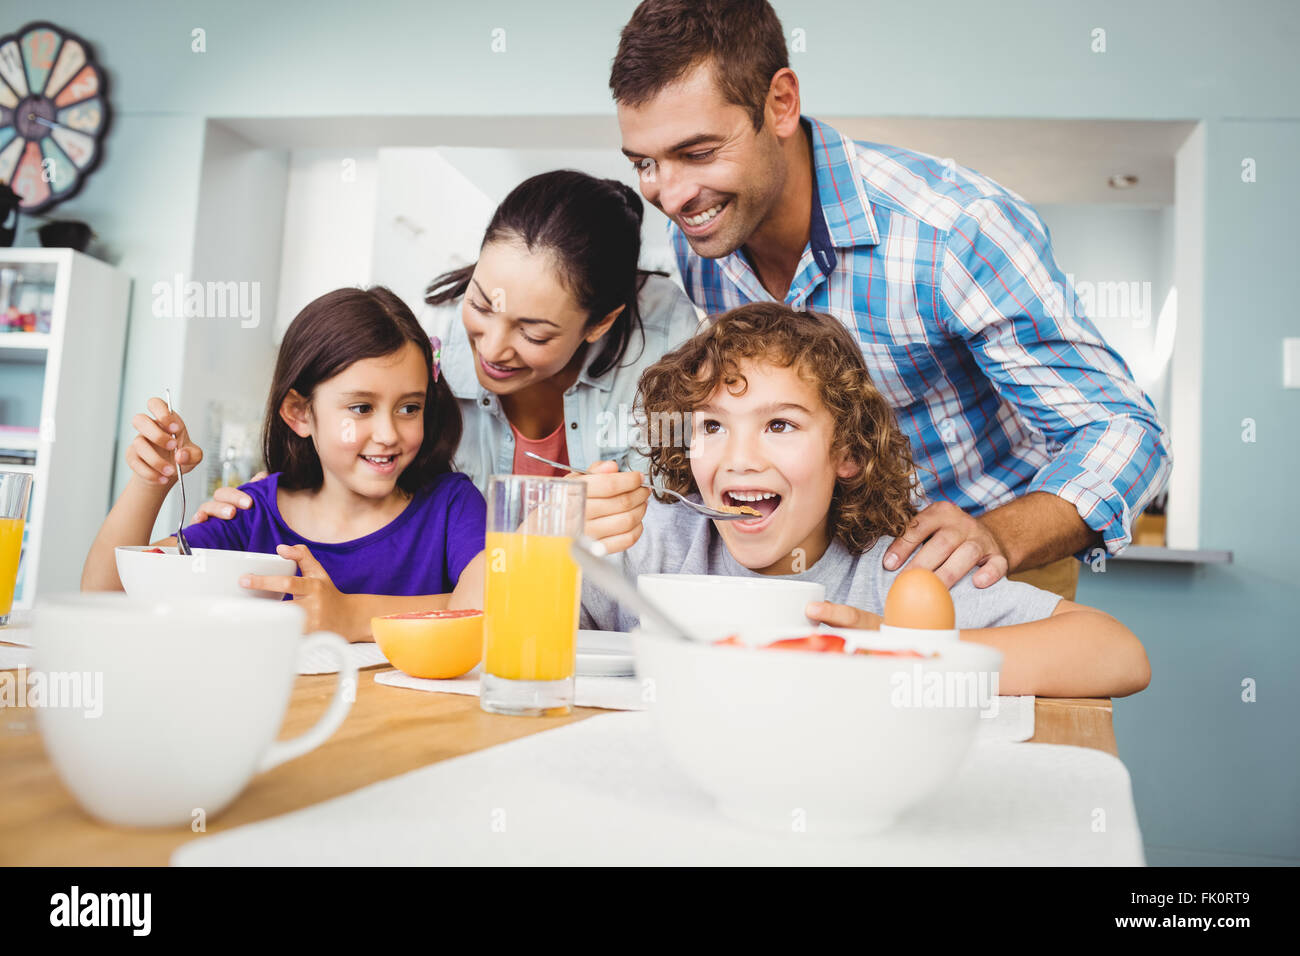 Cheerful man and woman with children during breakfast - Stock Image